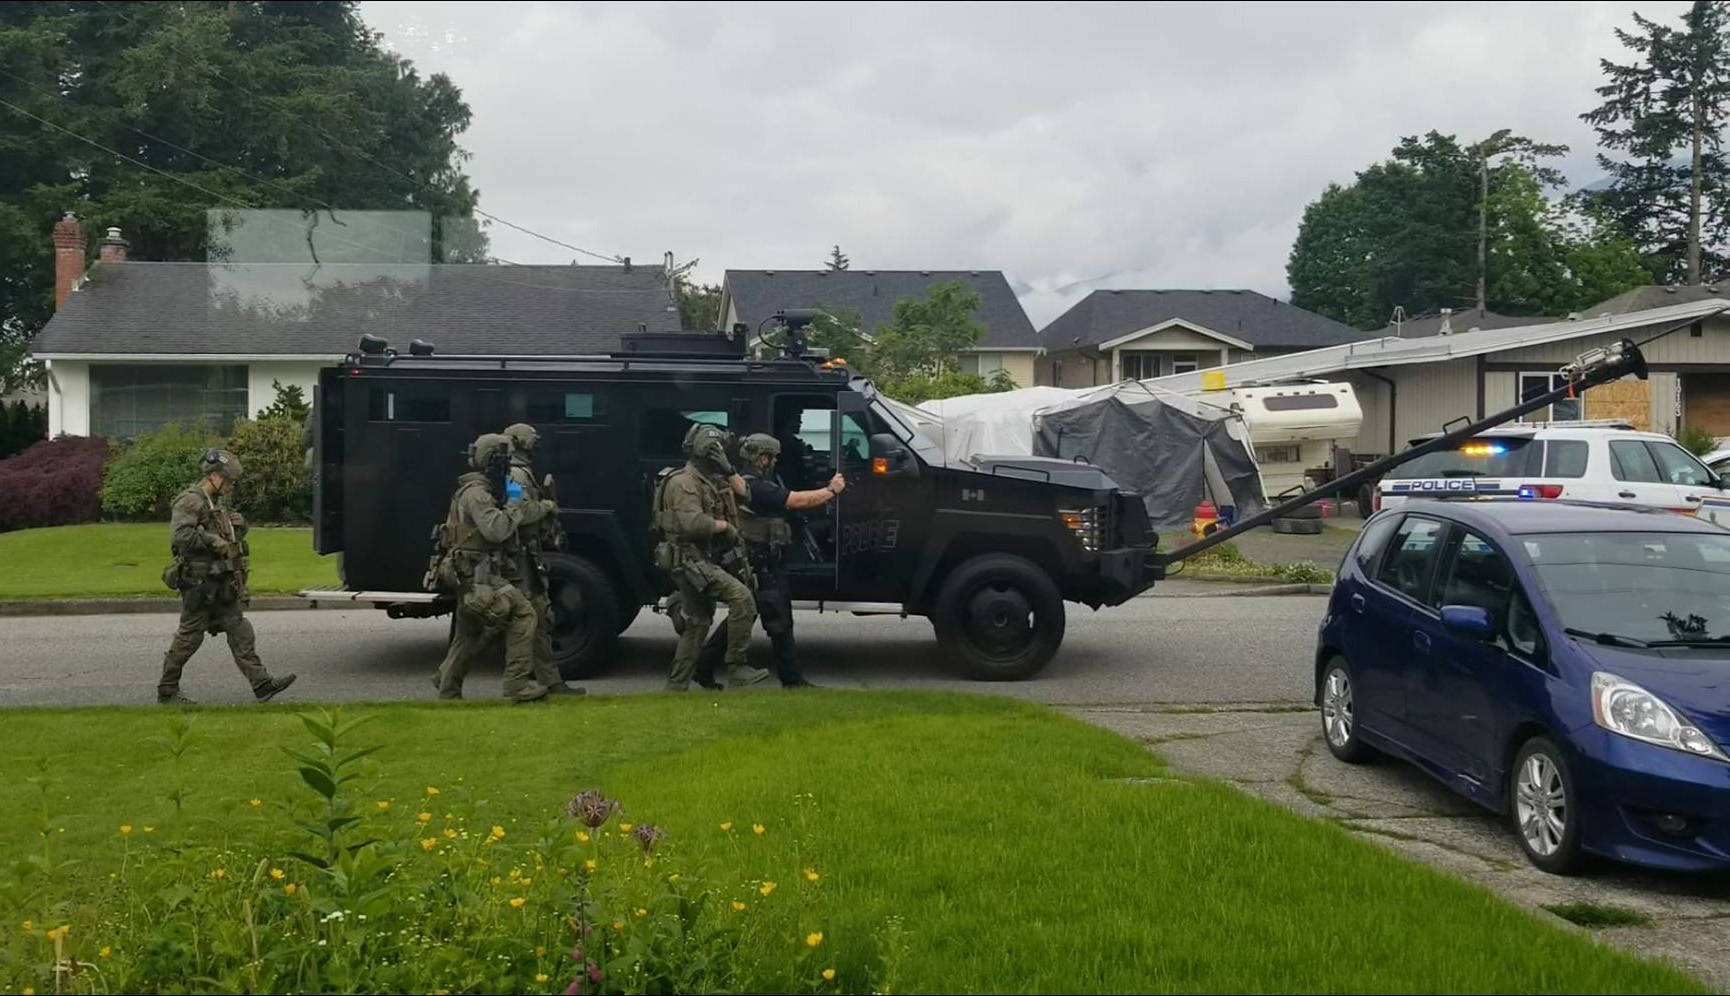 The Emergency Response Team sets up to approach a home on Fairview in Chilliwack on June 3, 2020. (Submitted)